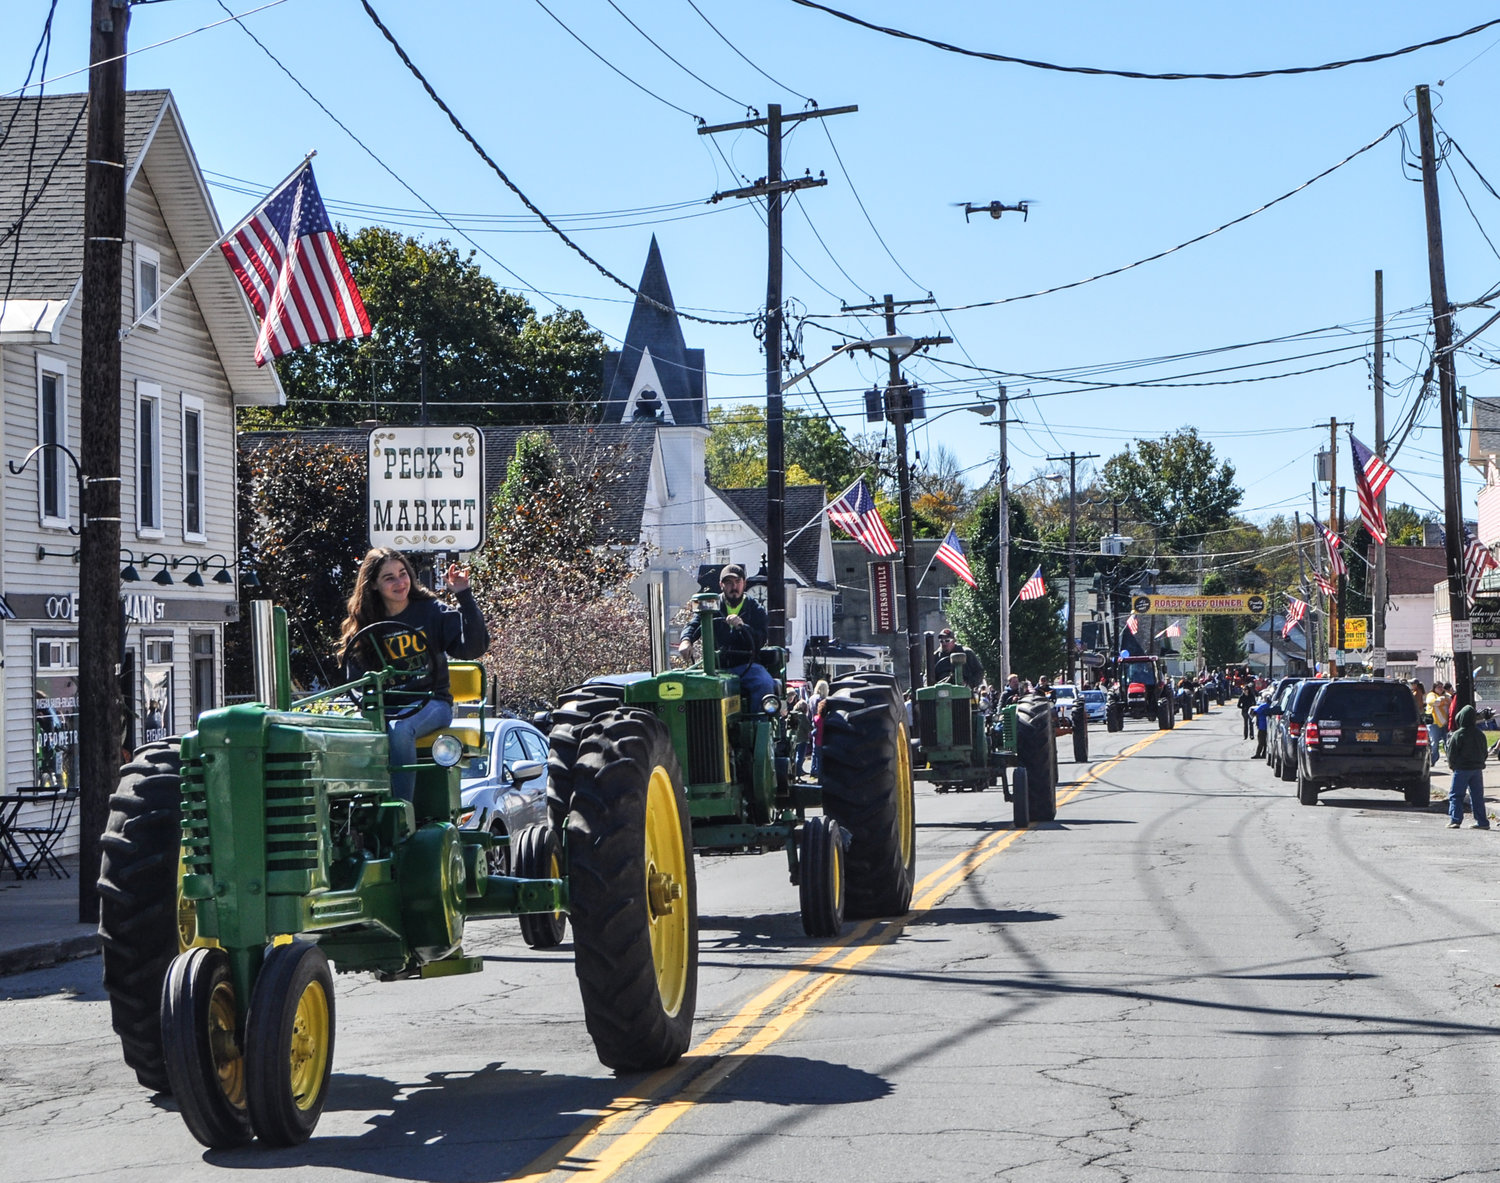 There's nothing like a good 'ol-fashioned tractor parade, IMHO.